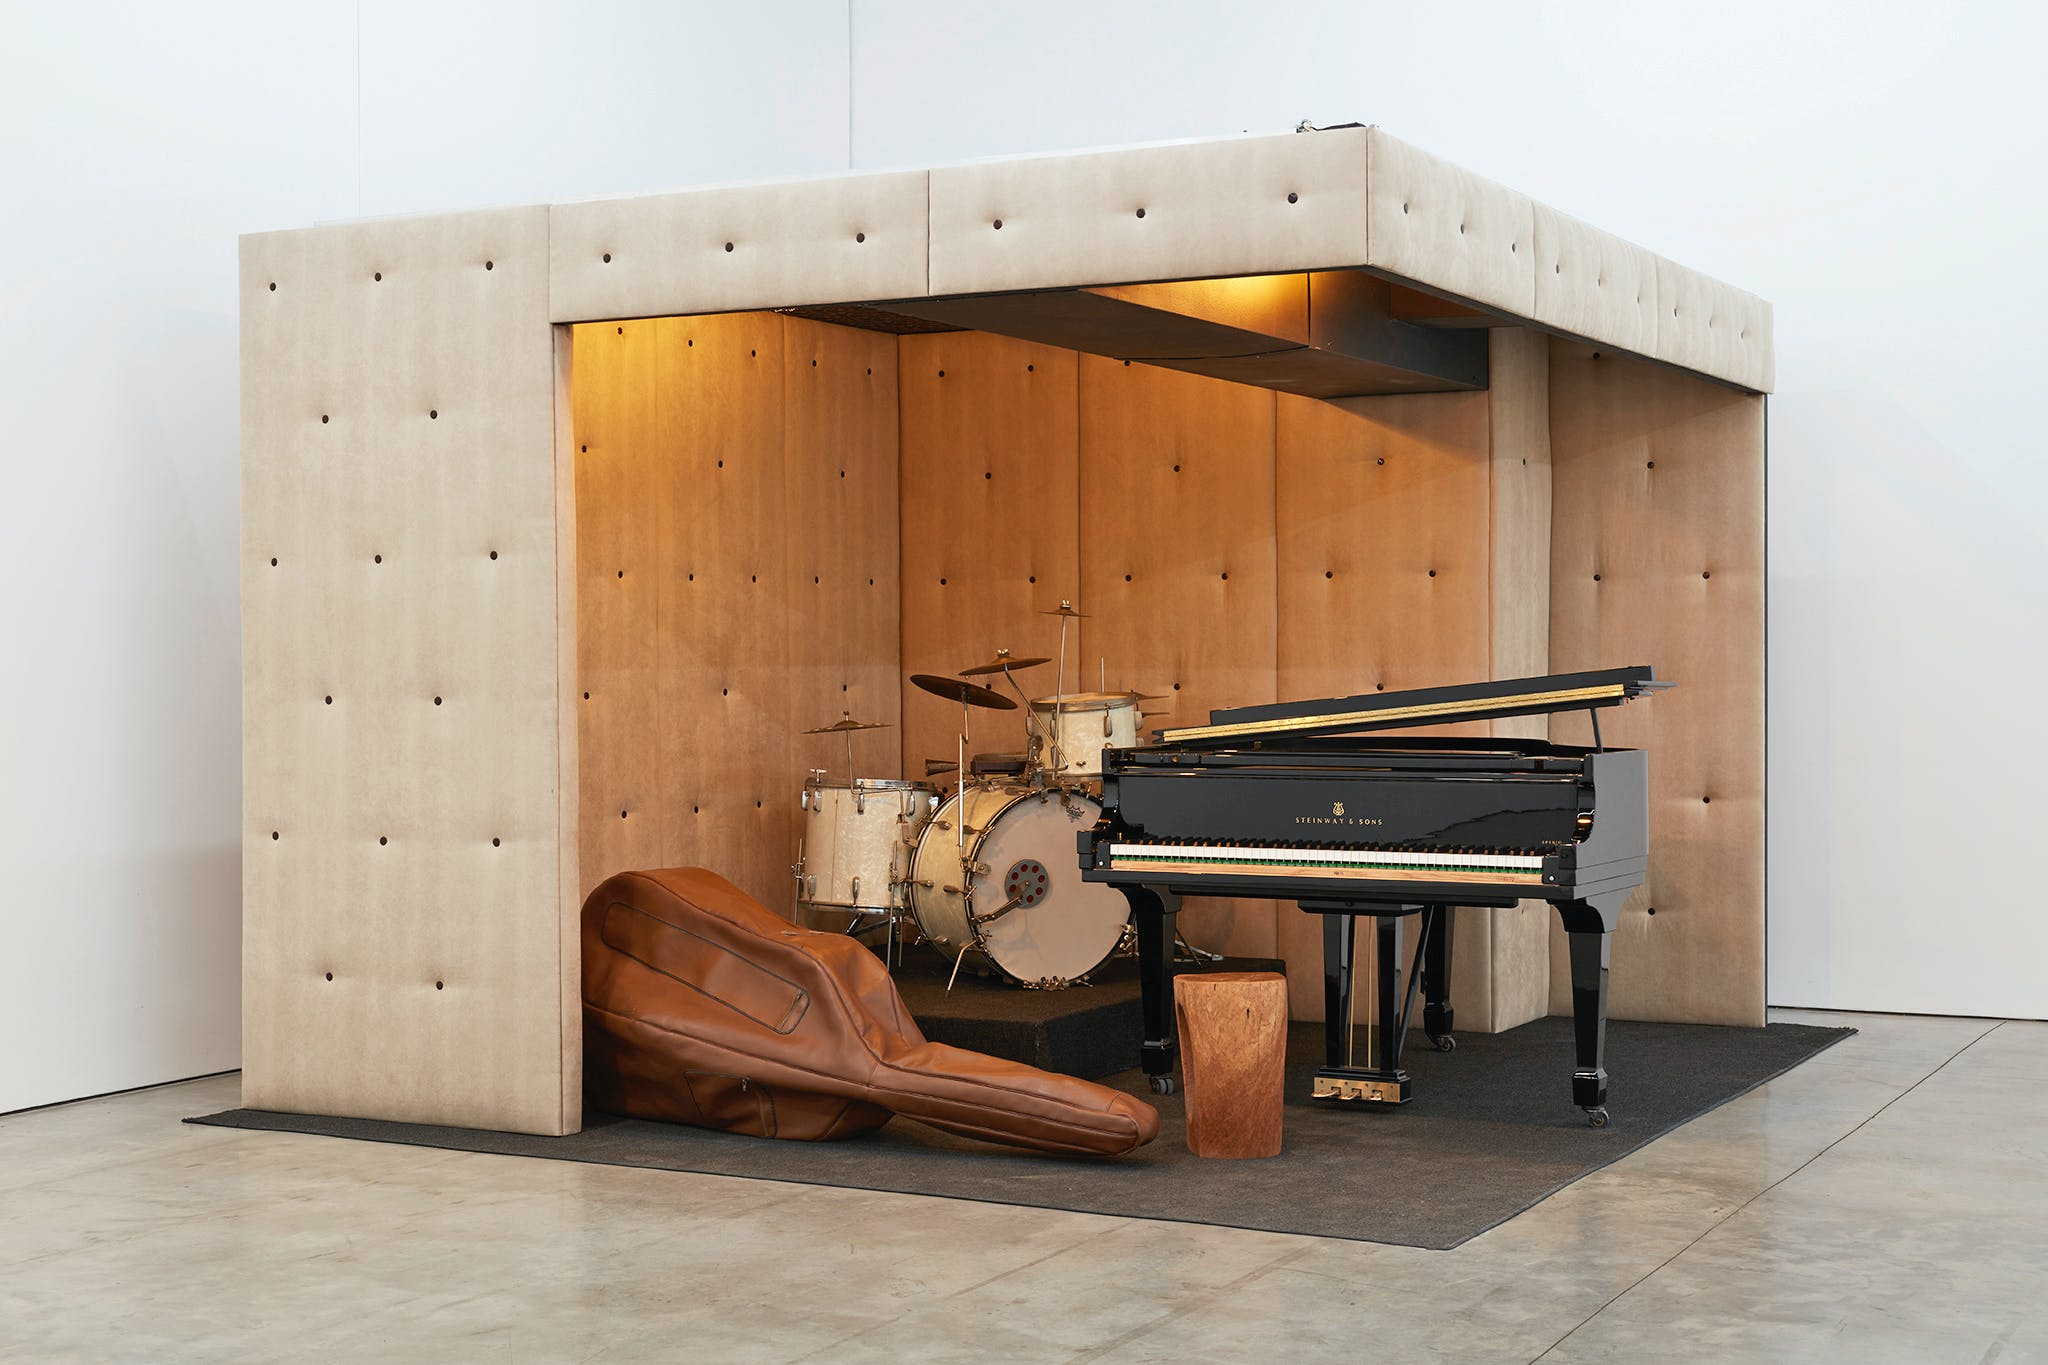 2.5 walls of a padded sound room with instruments inside.